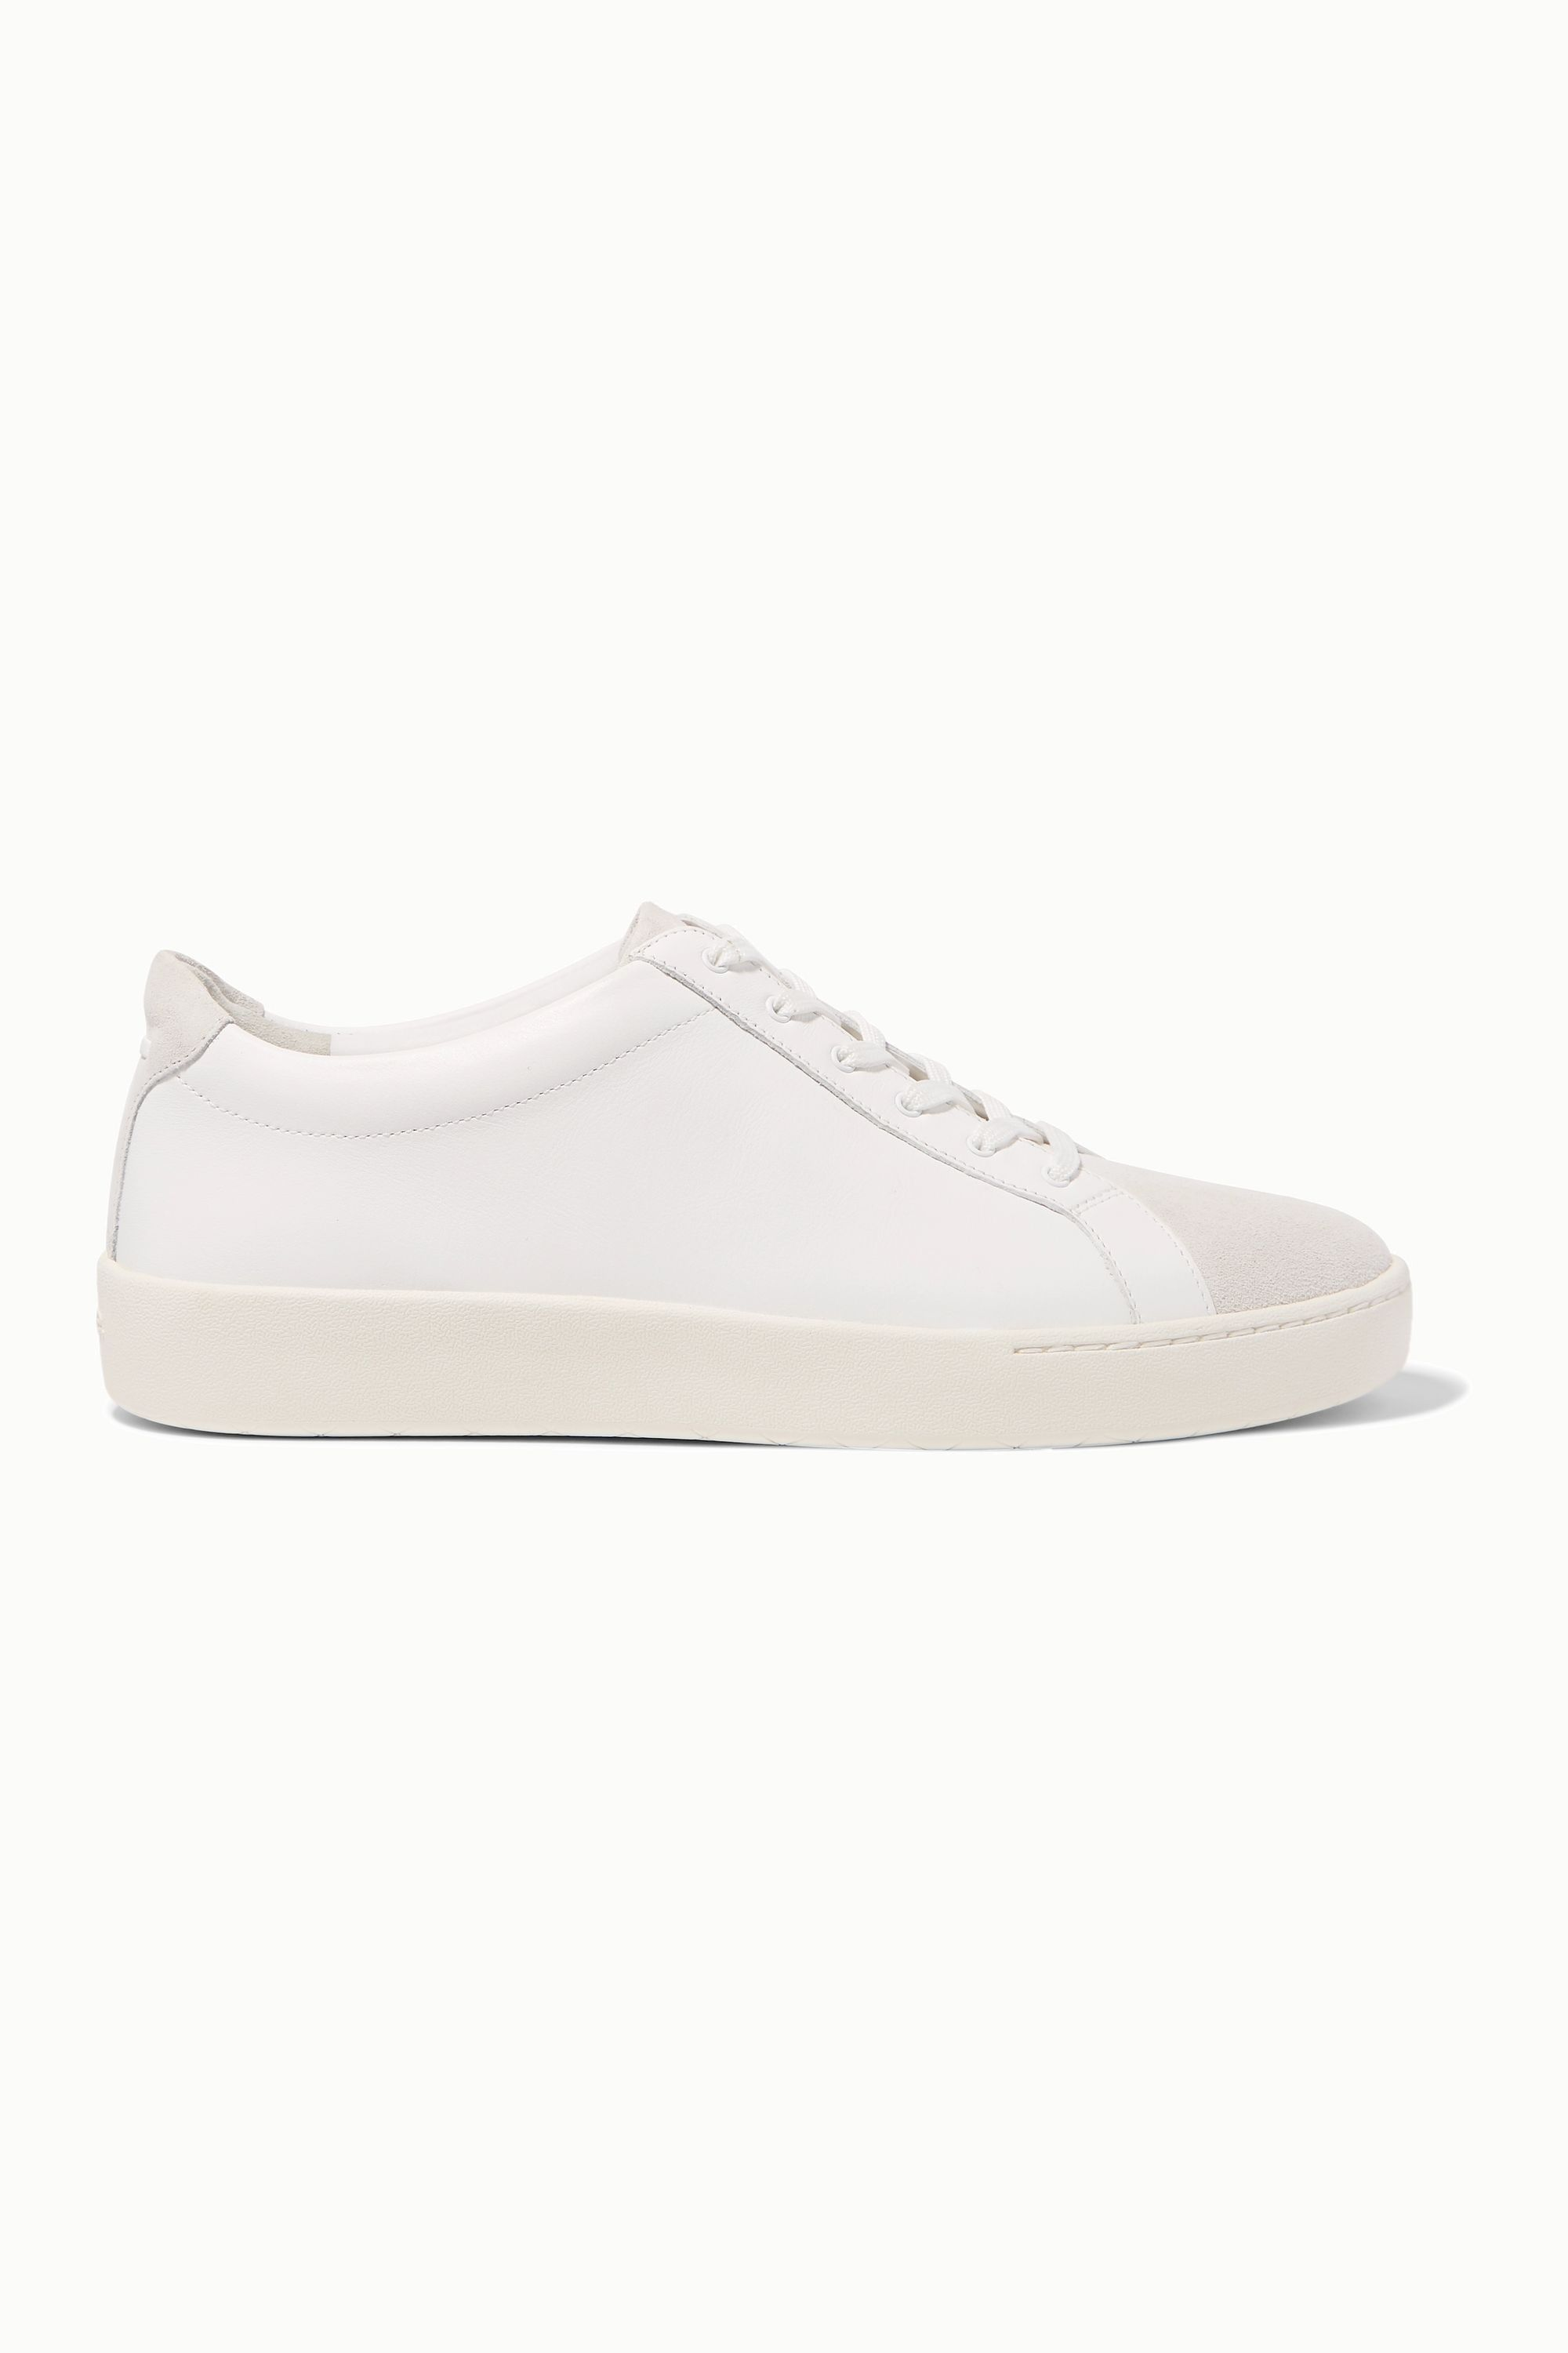 White Janna suede and leather sneakers